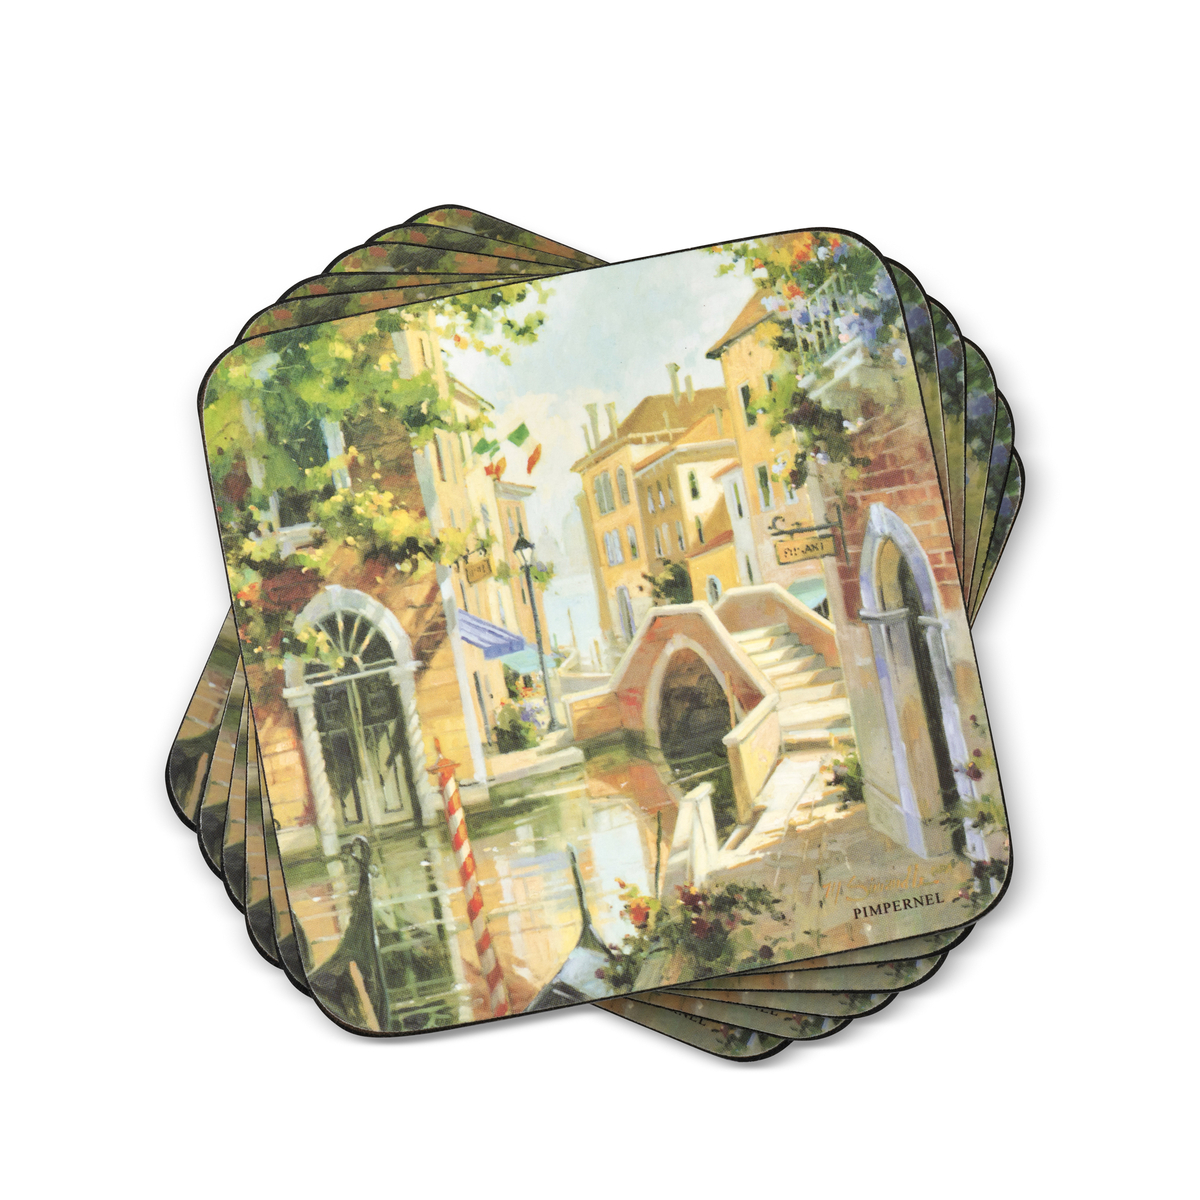 Pimpernel Venetian Scenes Coasters Set of 6 image number 0